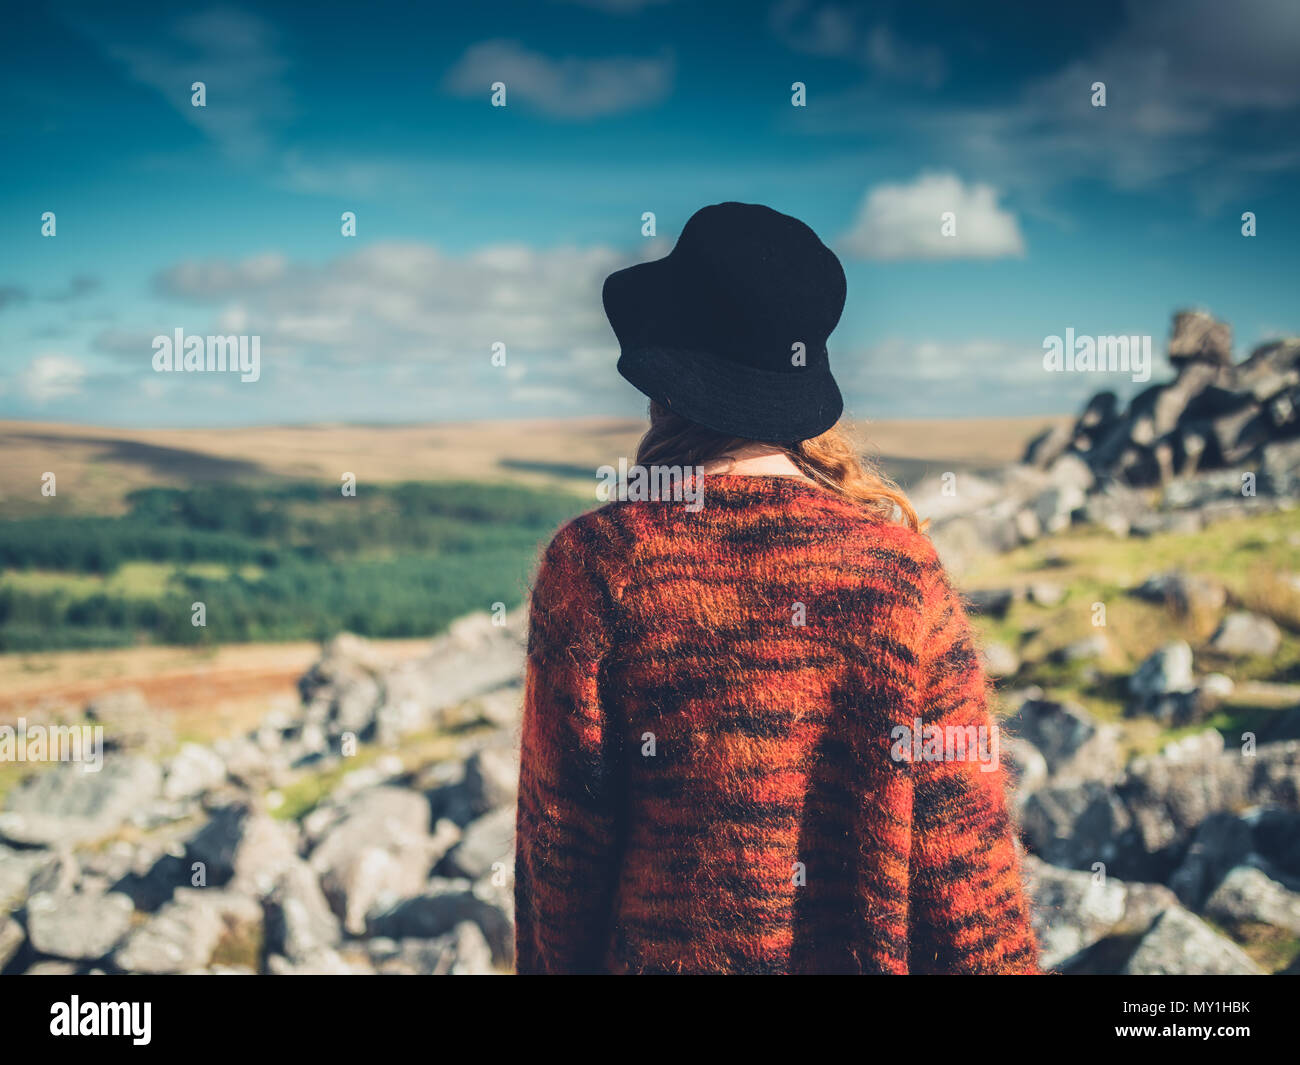 A young woman wearing a hat is walking in the wilderness - Stock Image